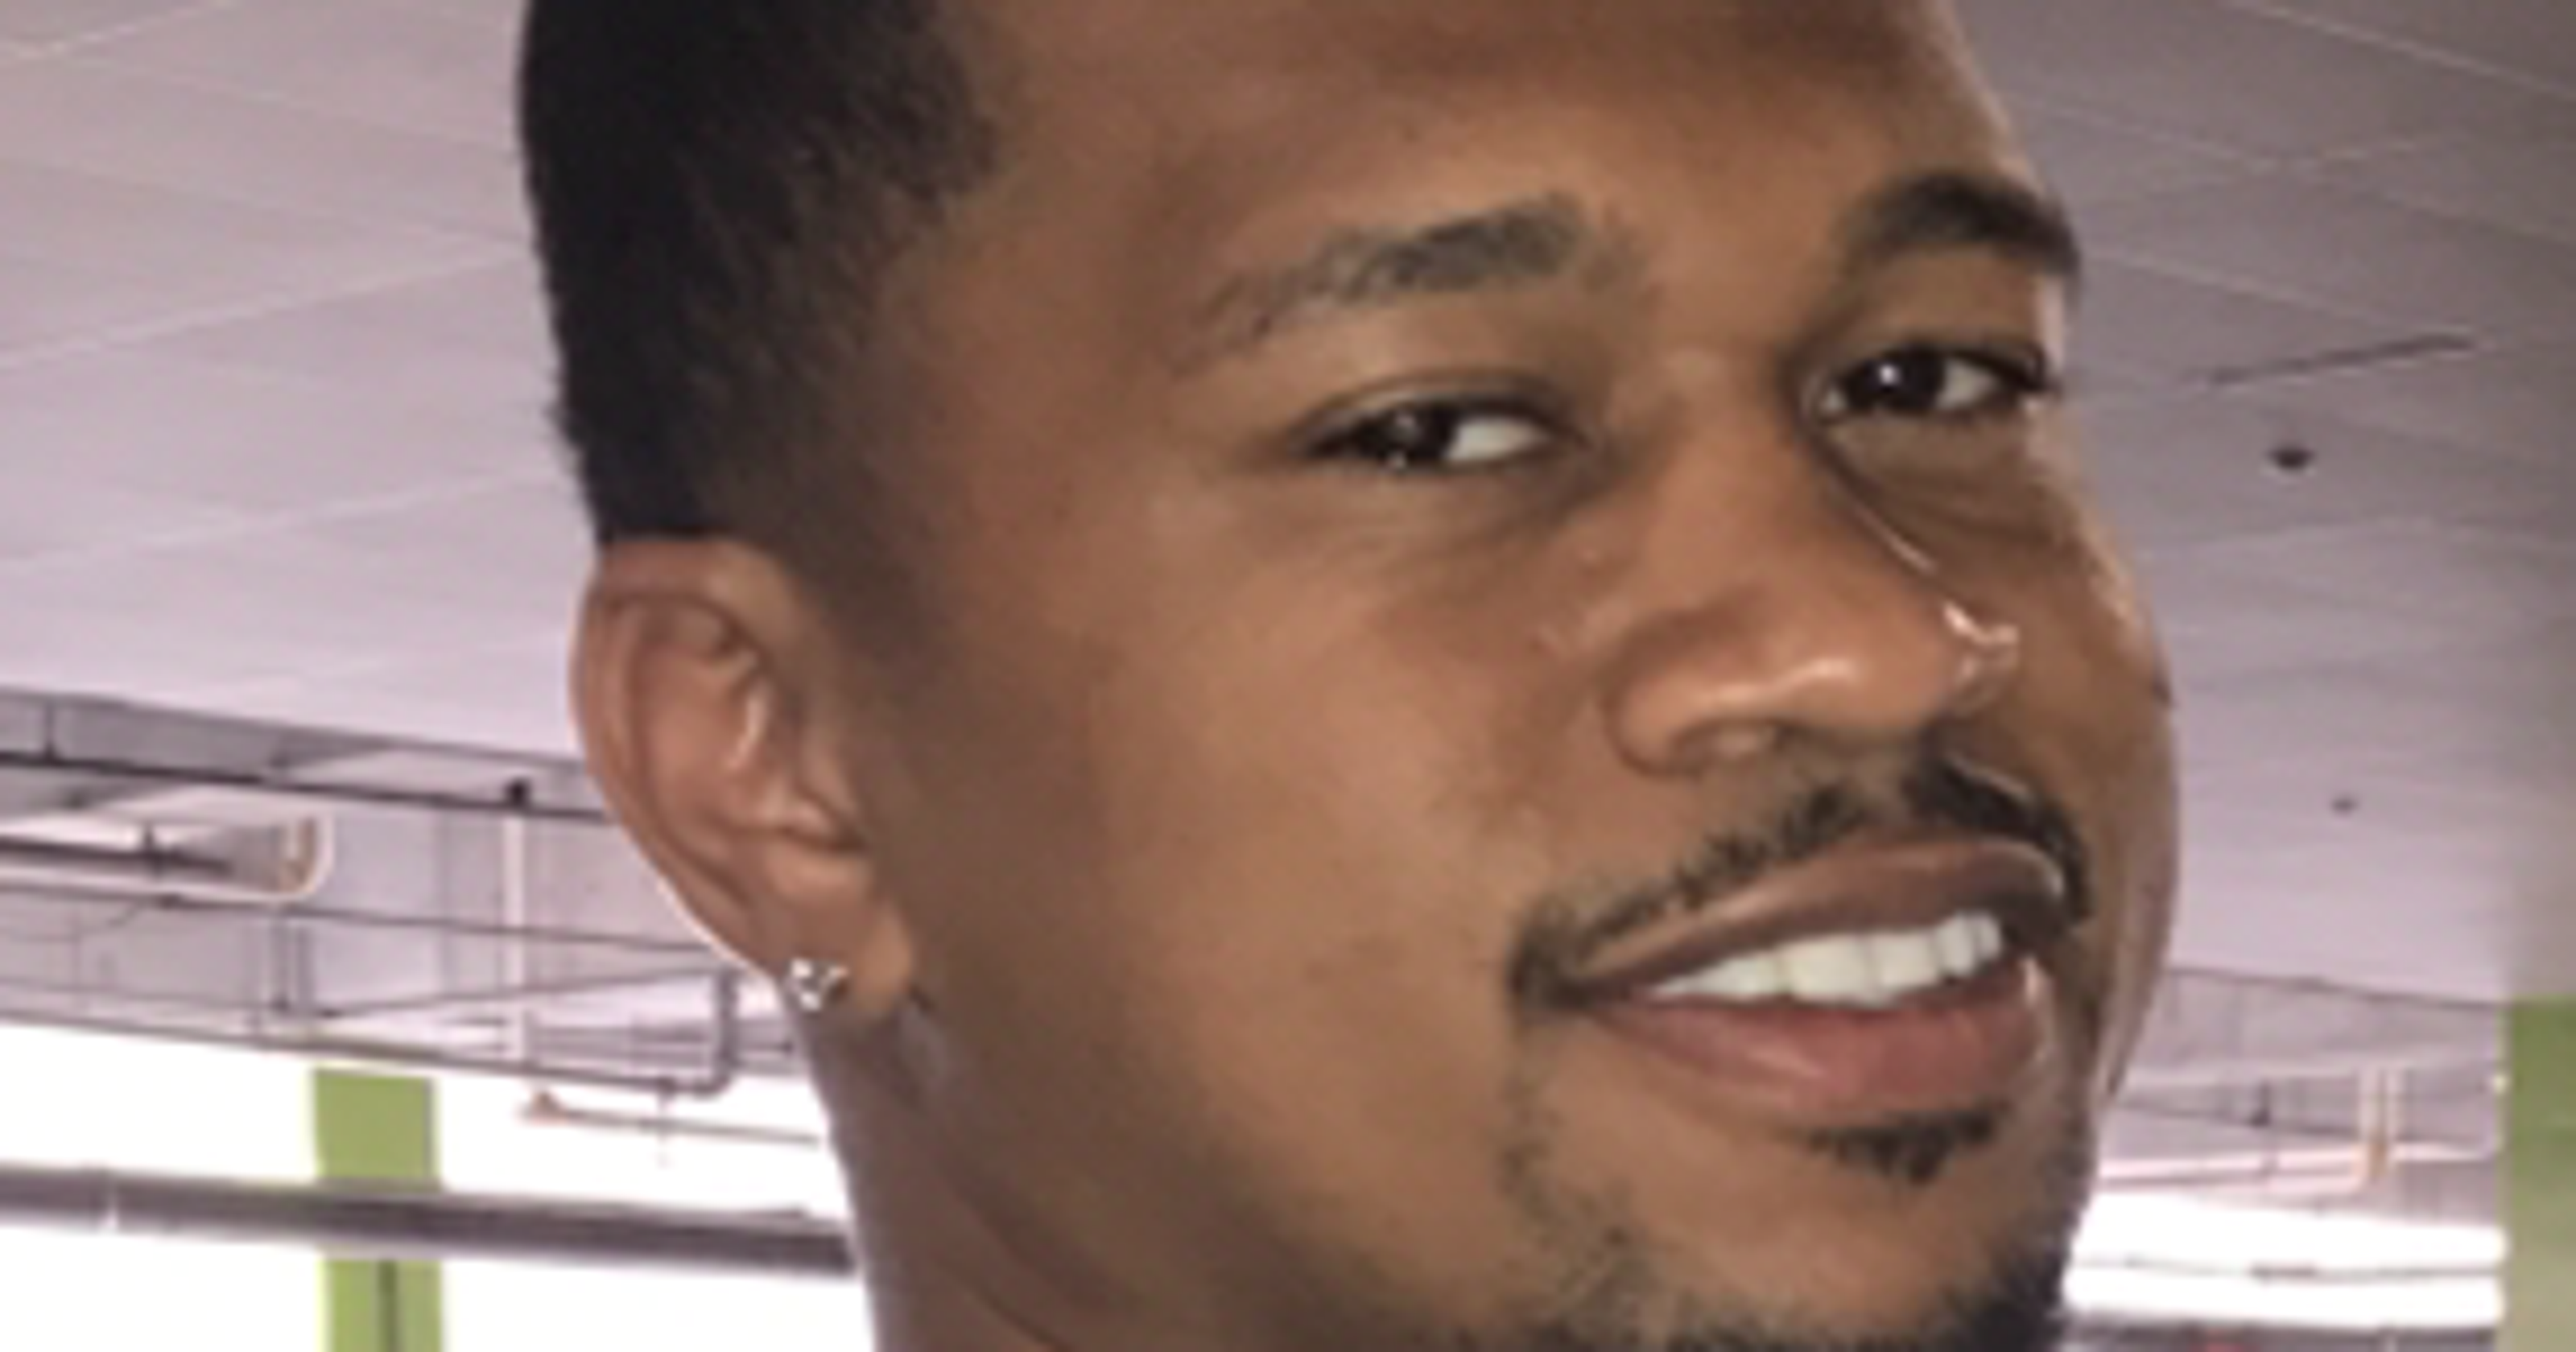 Bodies Of Missing Montgomery Rapper Bambino Gold, Cousin Found